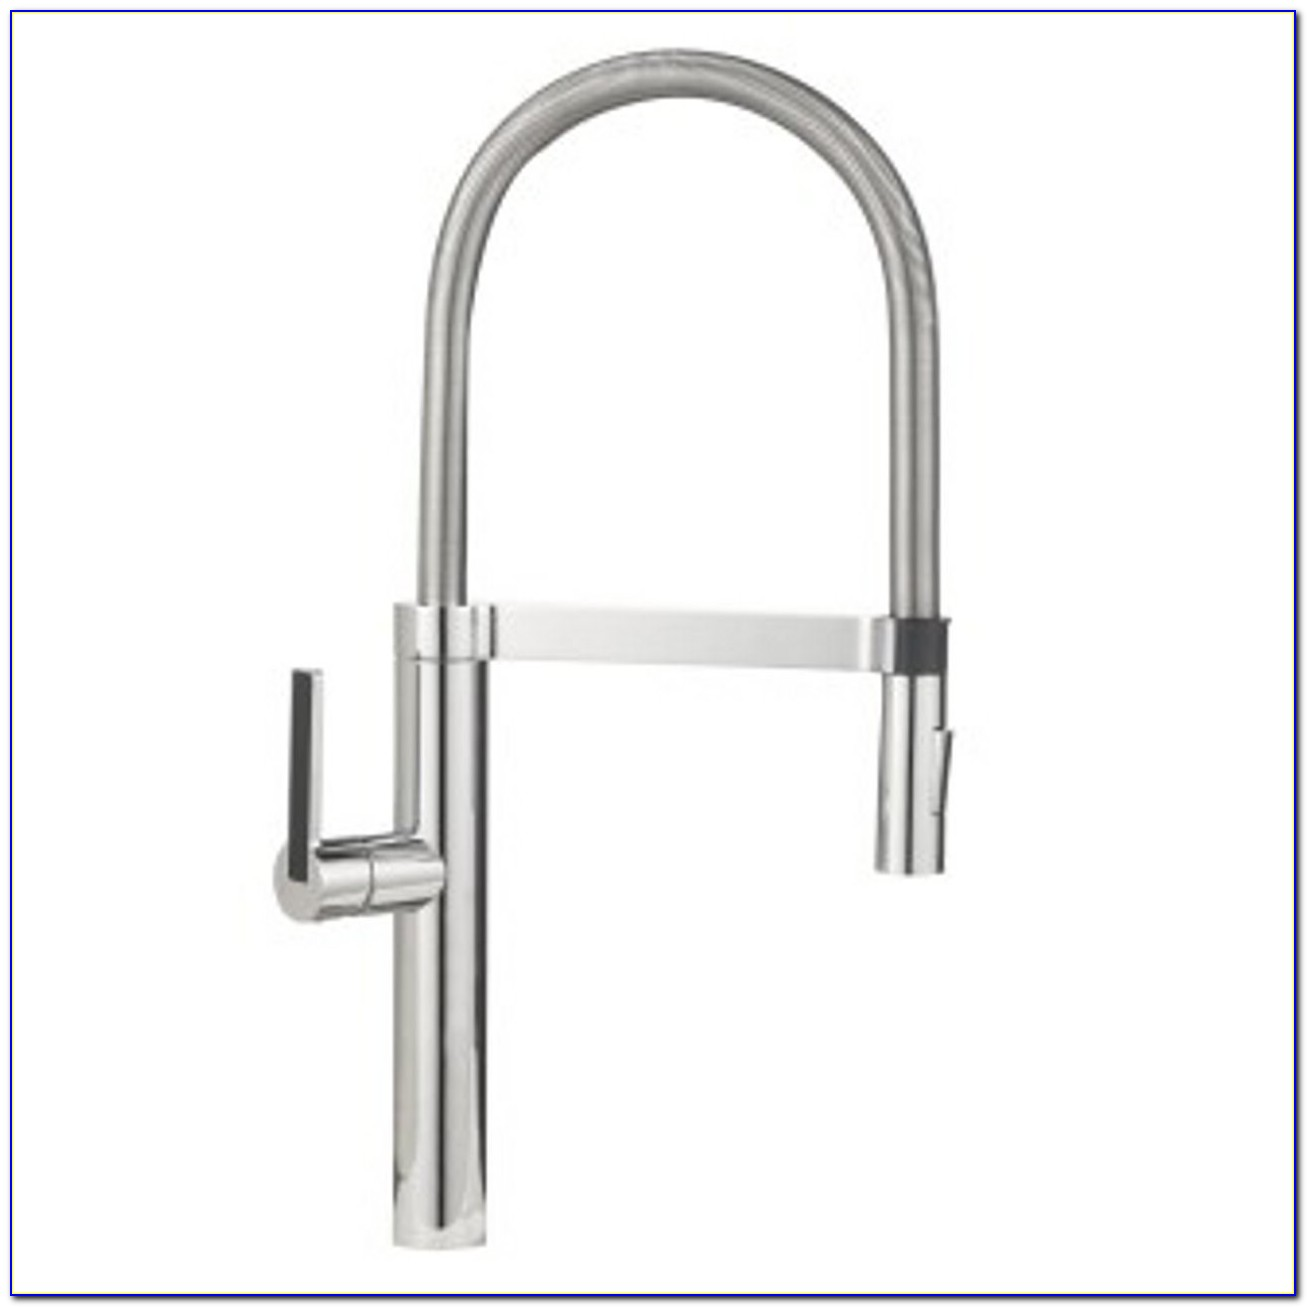 Best Semi Professional Kitchen Faucet